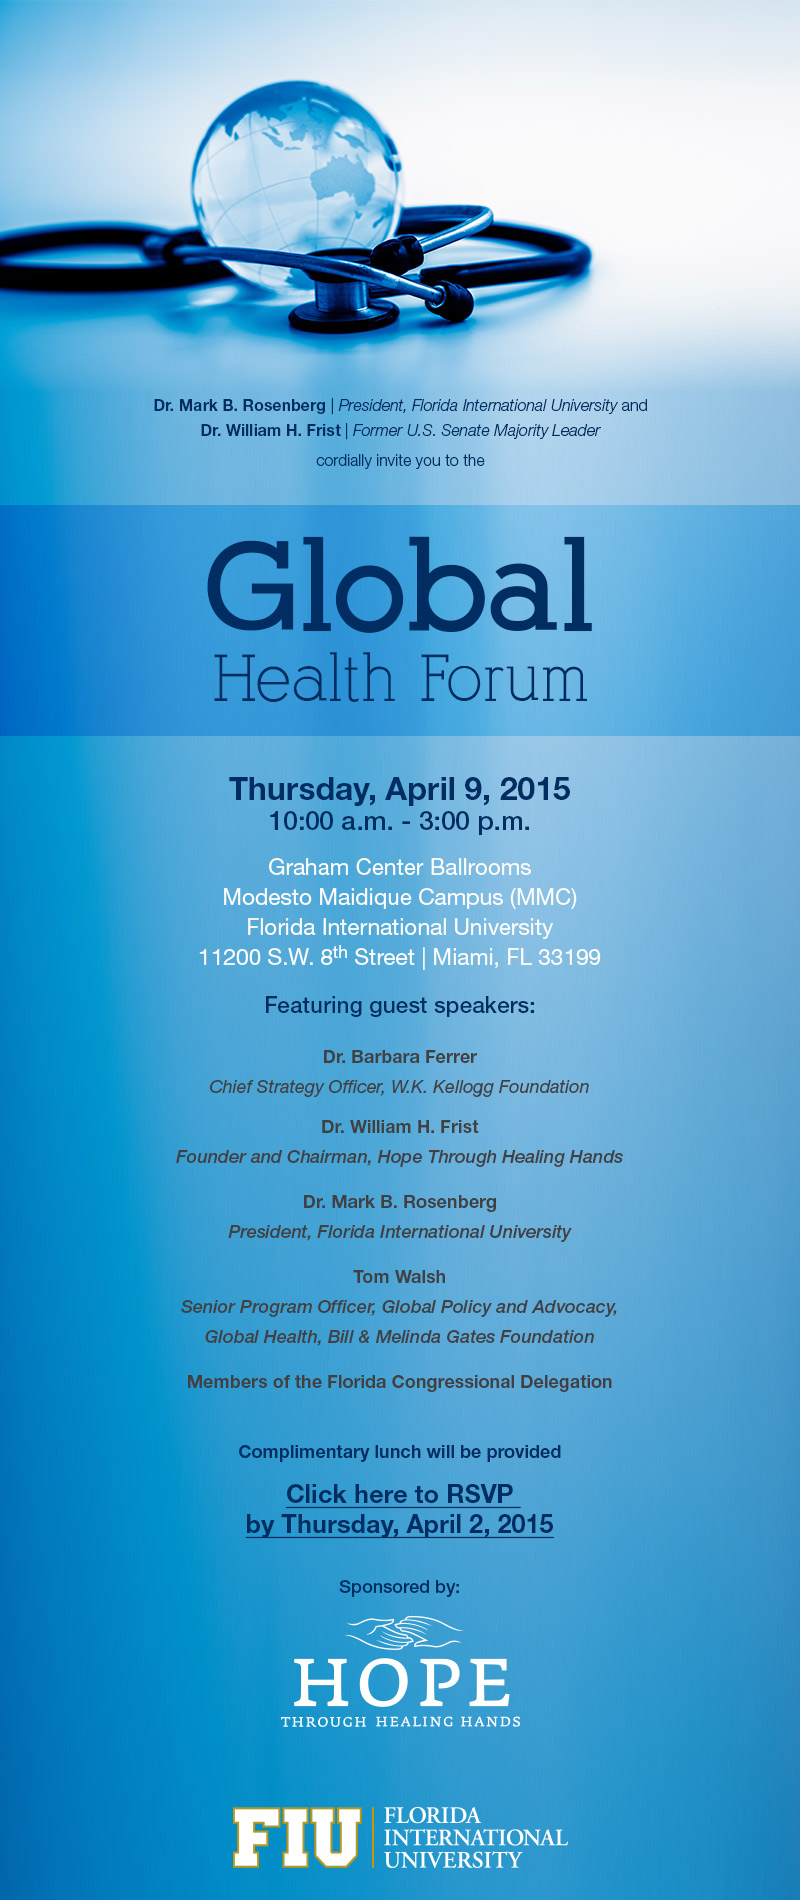 Global Health Forum